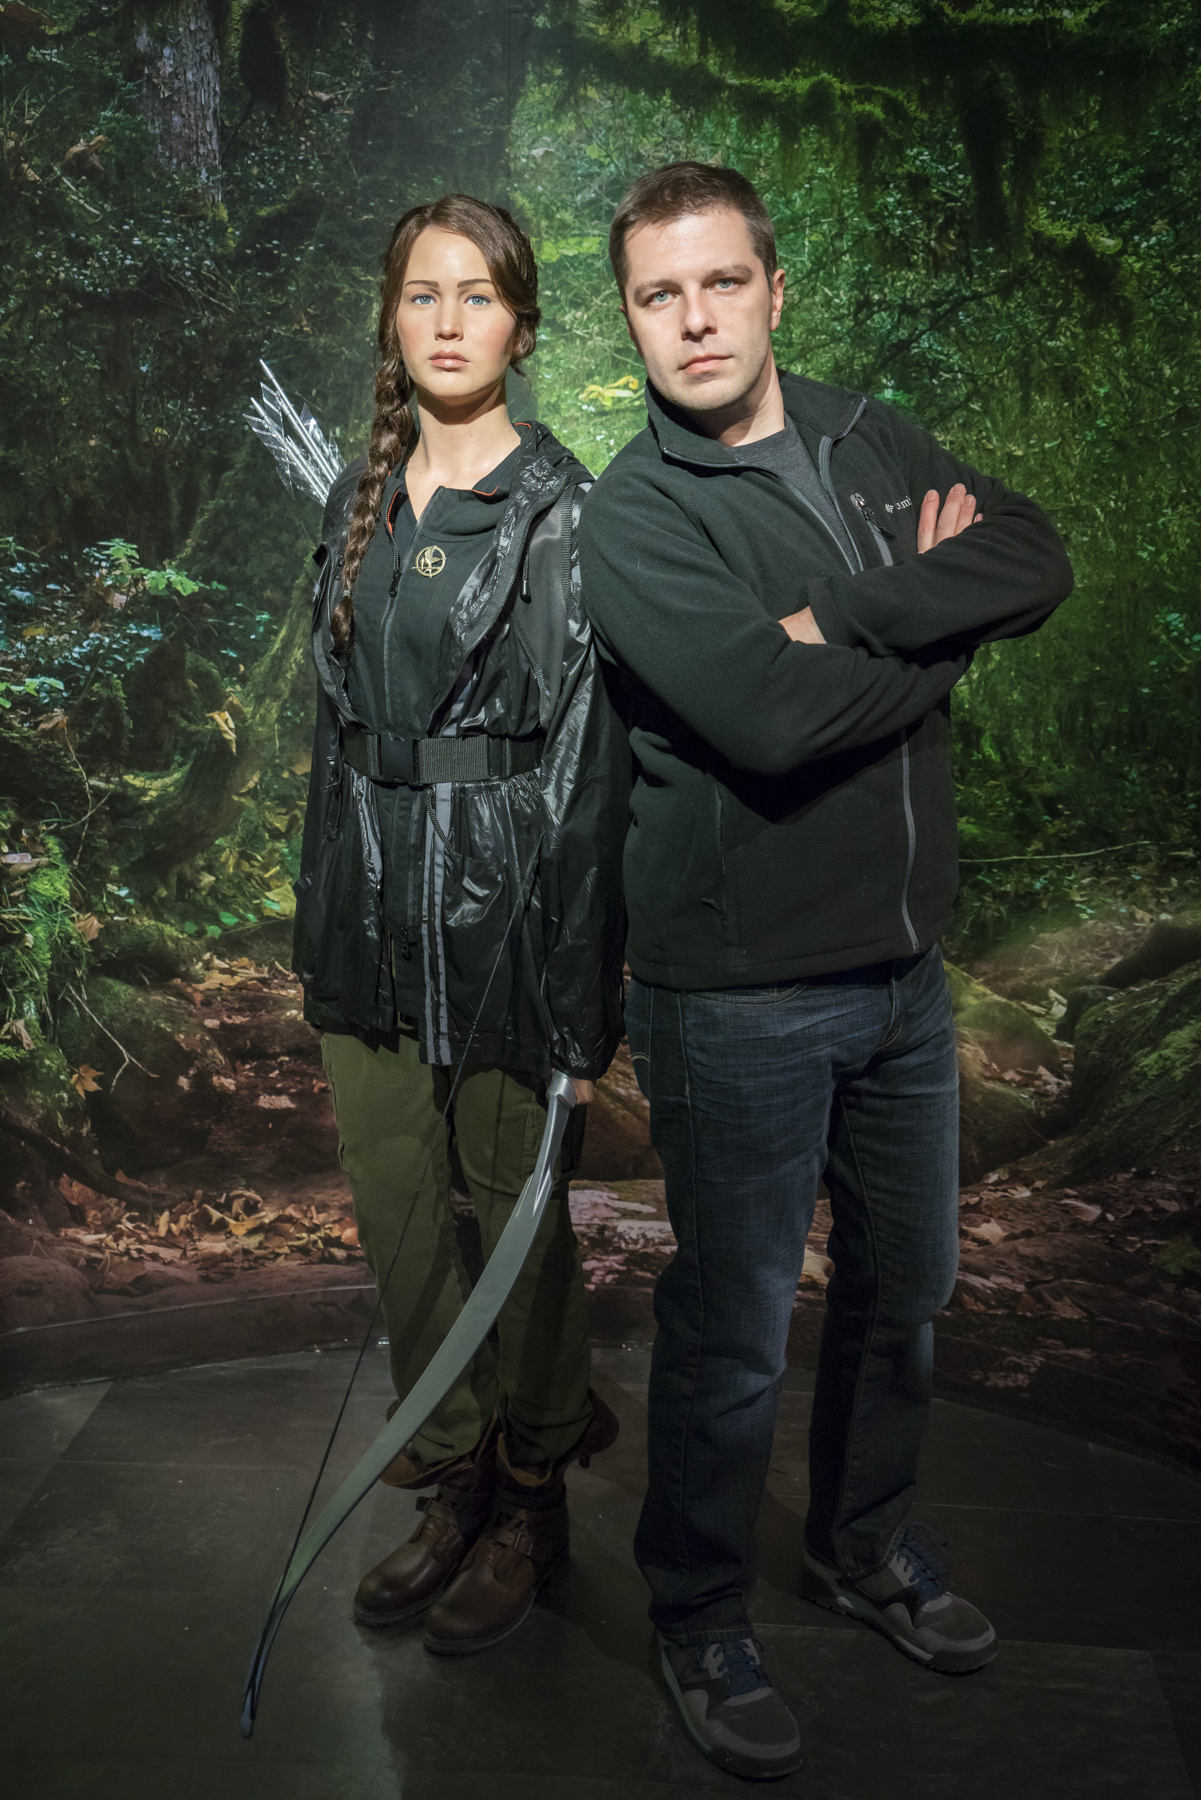 Jennifer Lawrence at Madame Tussauds